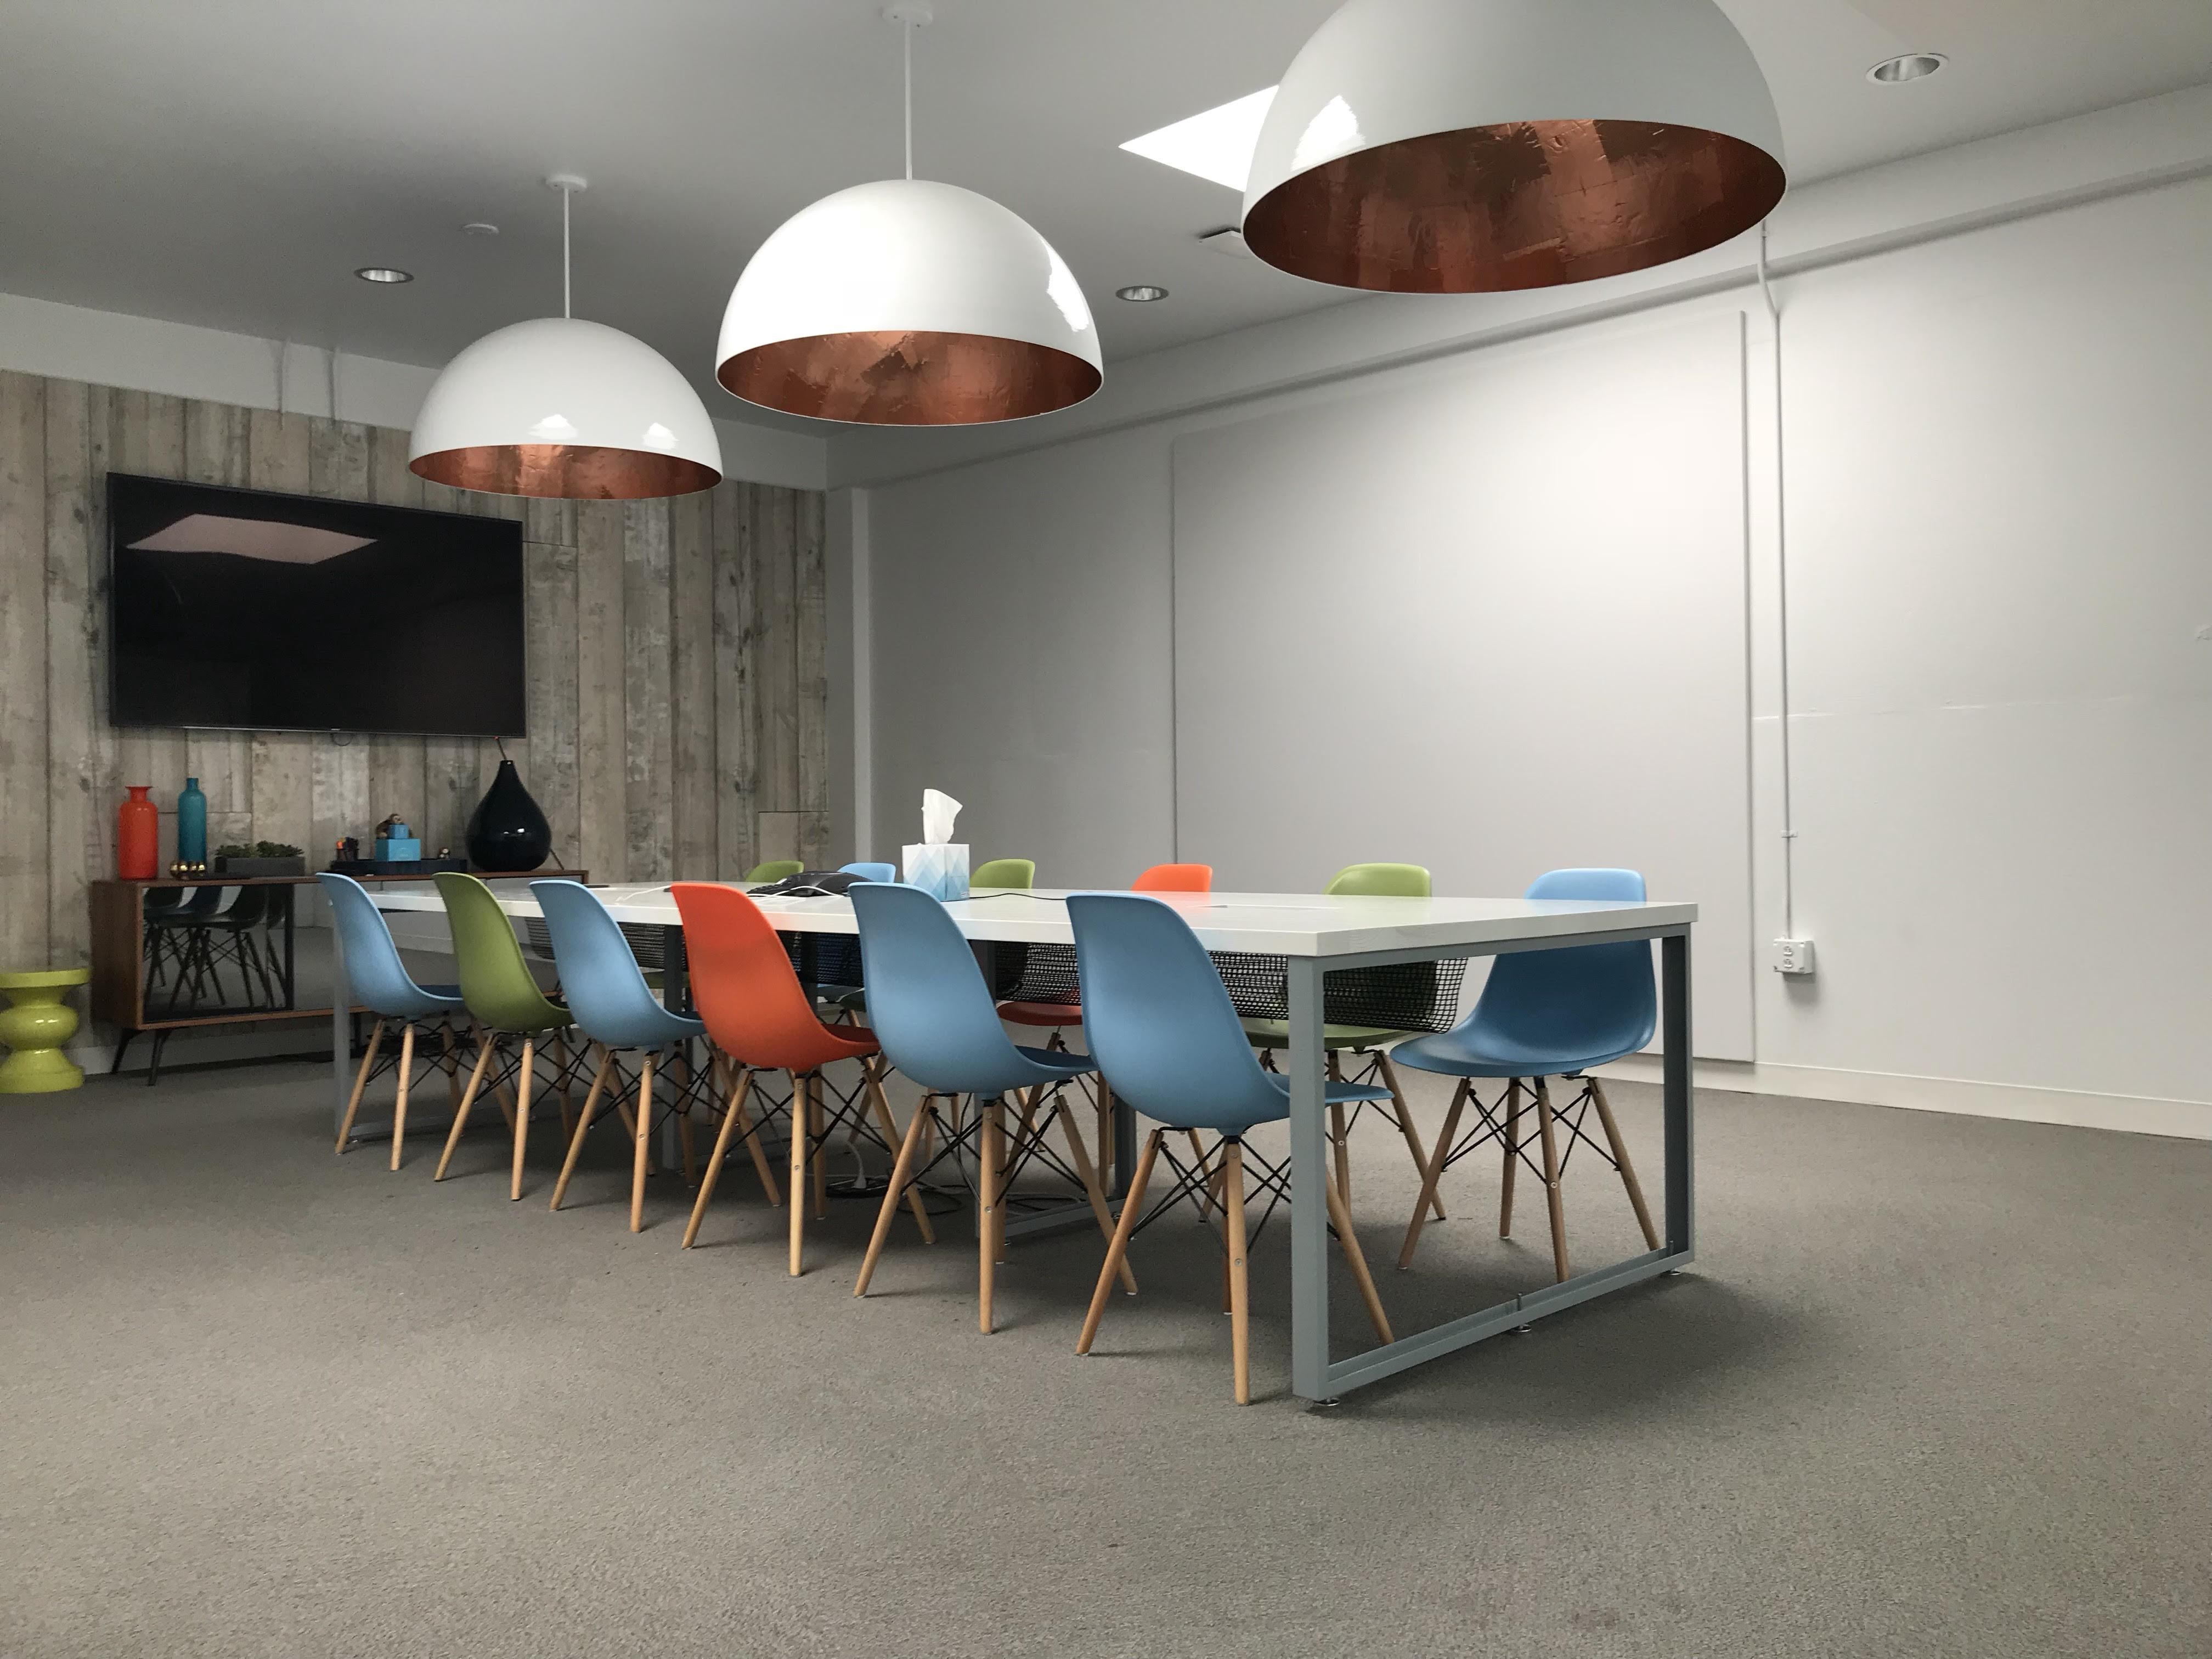 Alyssa Fong - Training Room for 12 at Whil Concepts